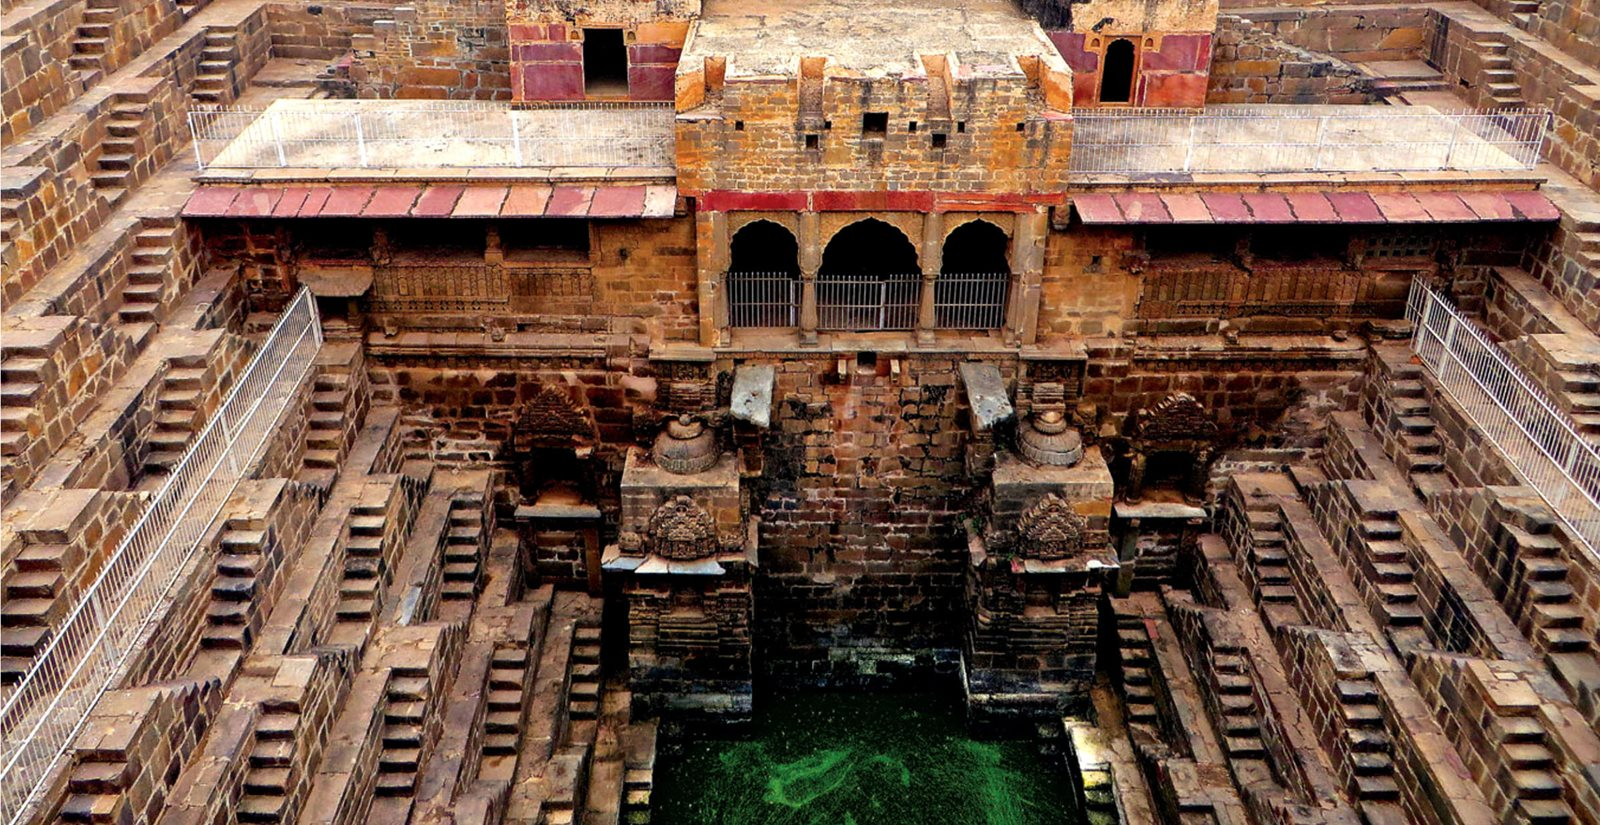 FirstLook: Stepwells of Chand Baori